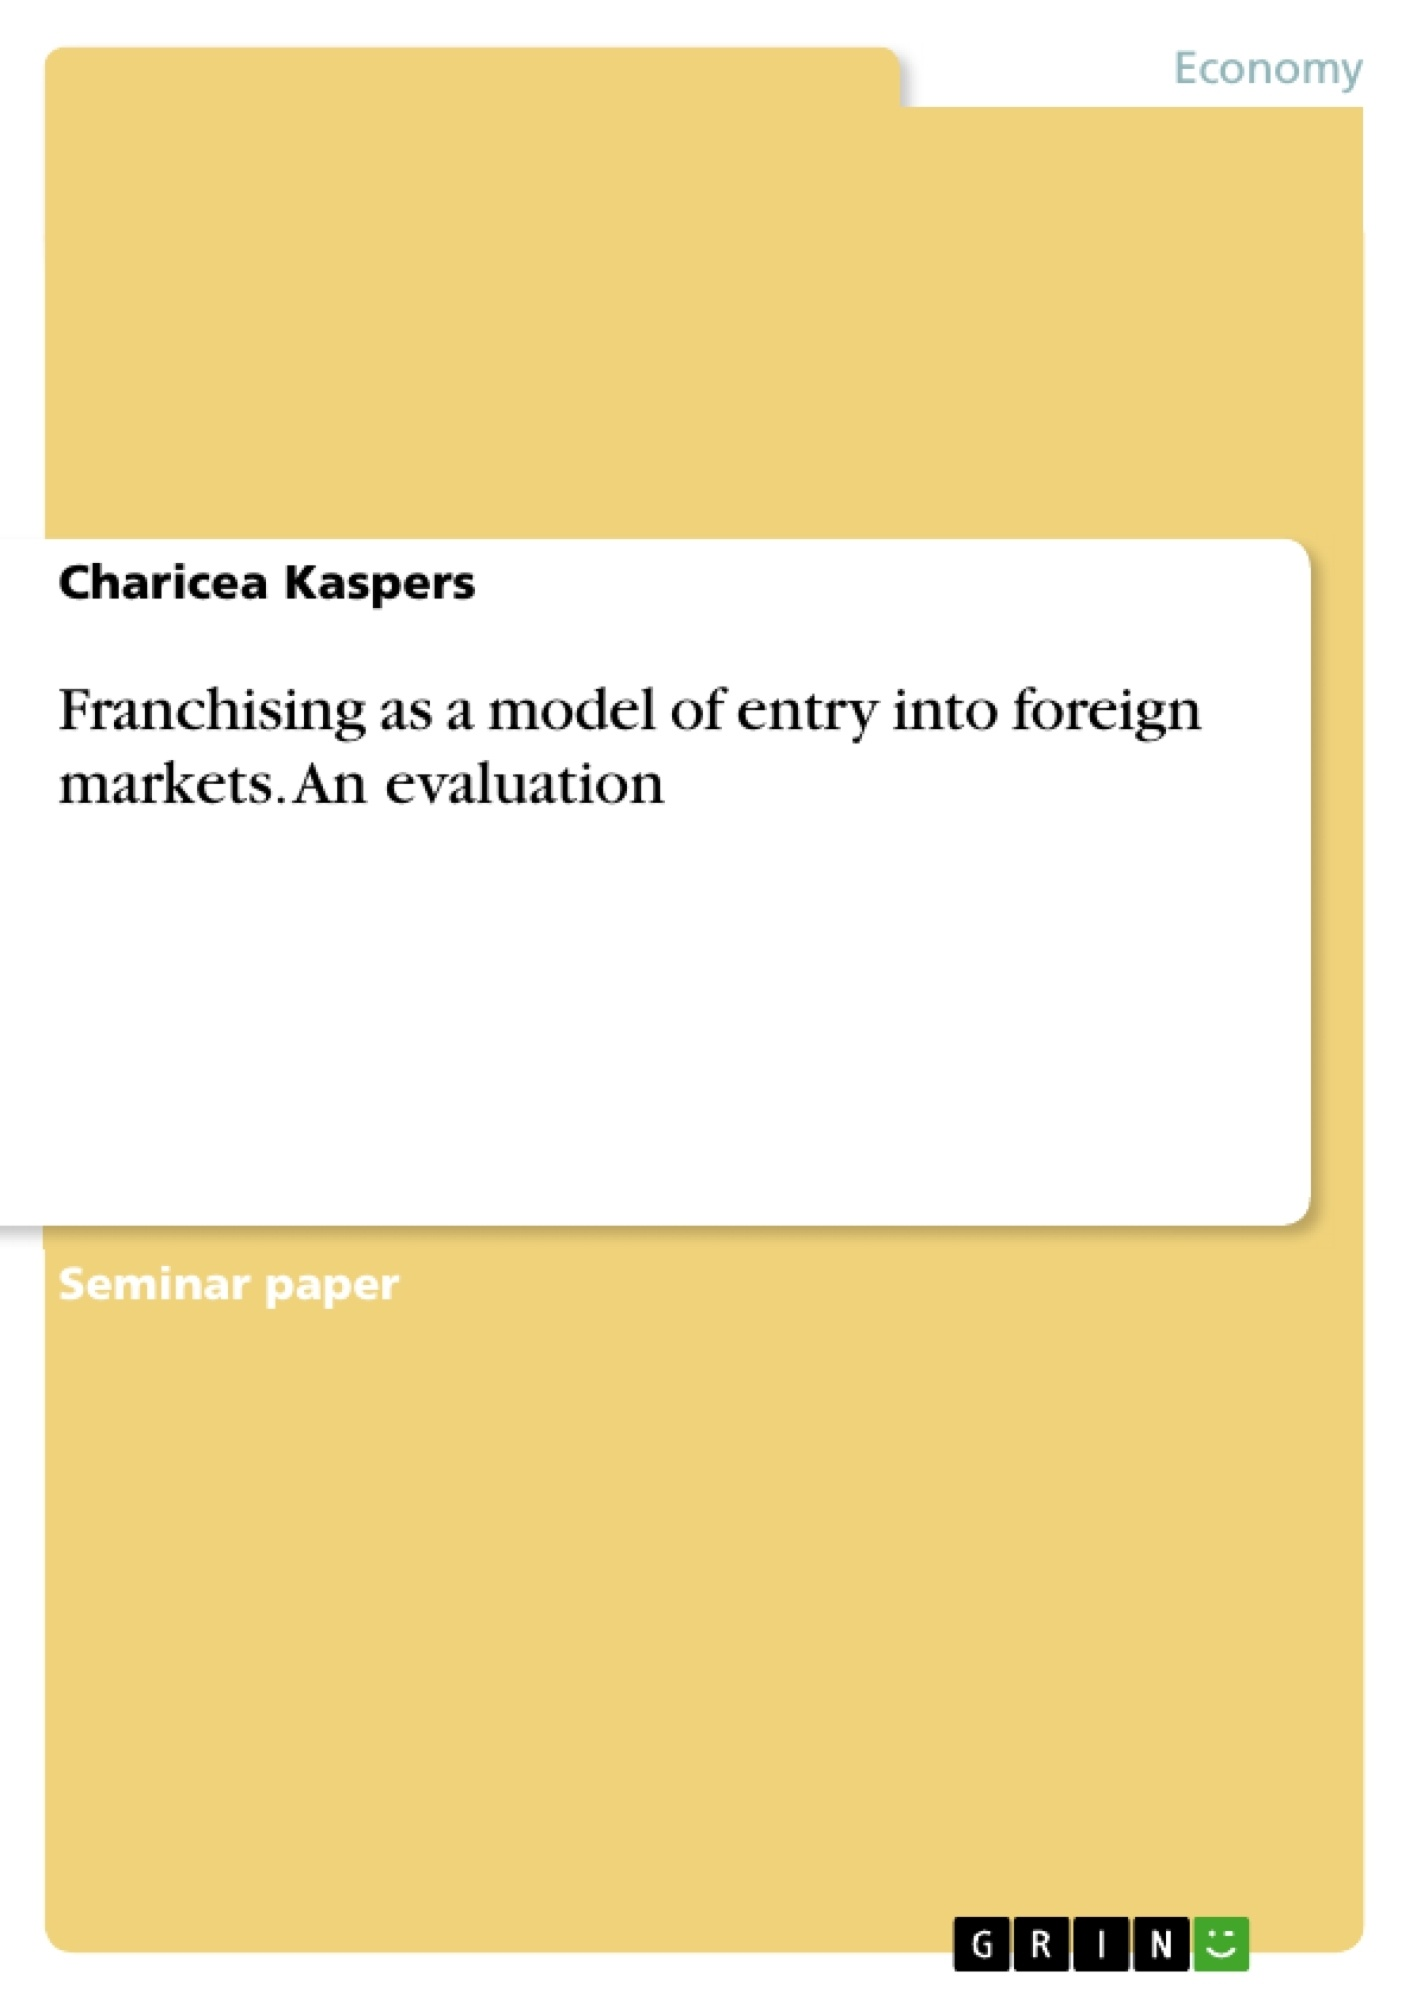 Title: Franchising as a model of entry into foreign markets. An evaluation